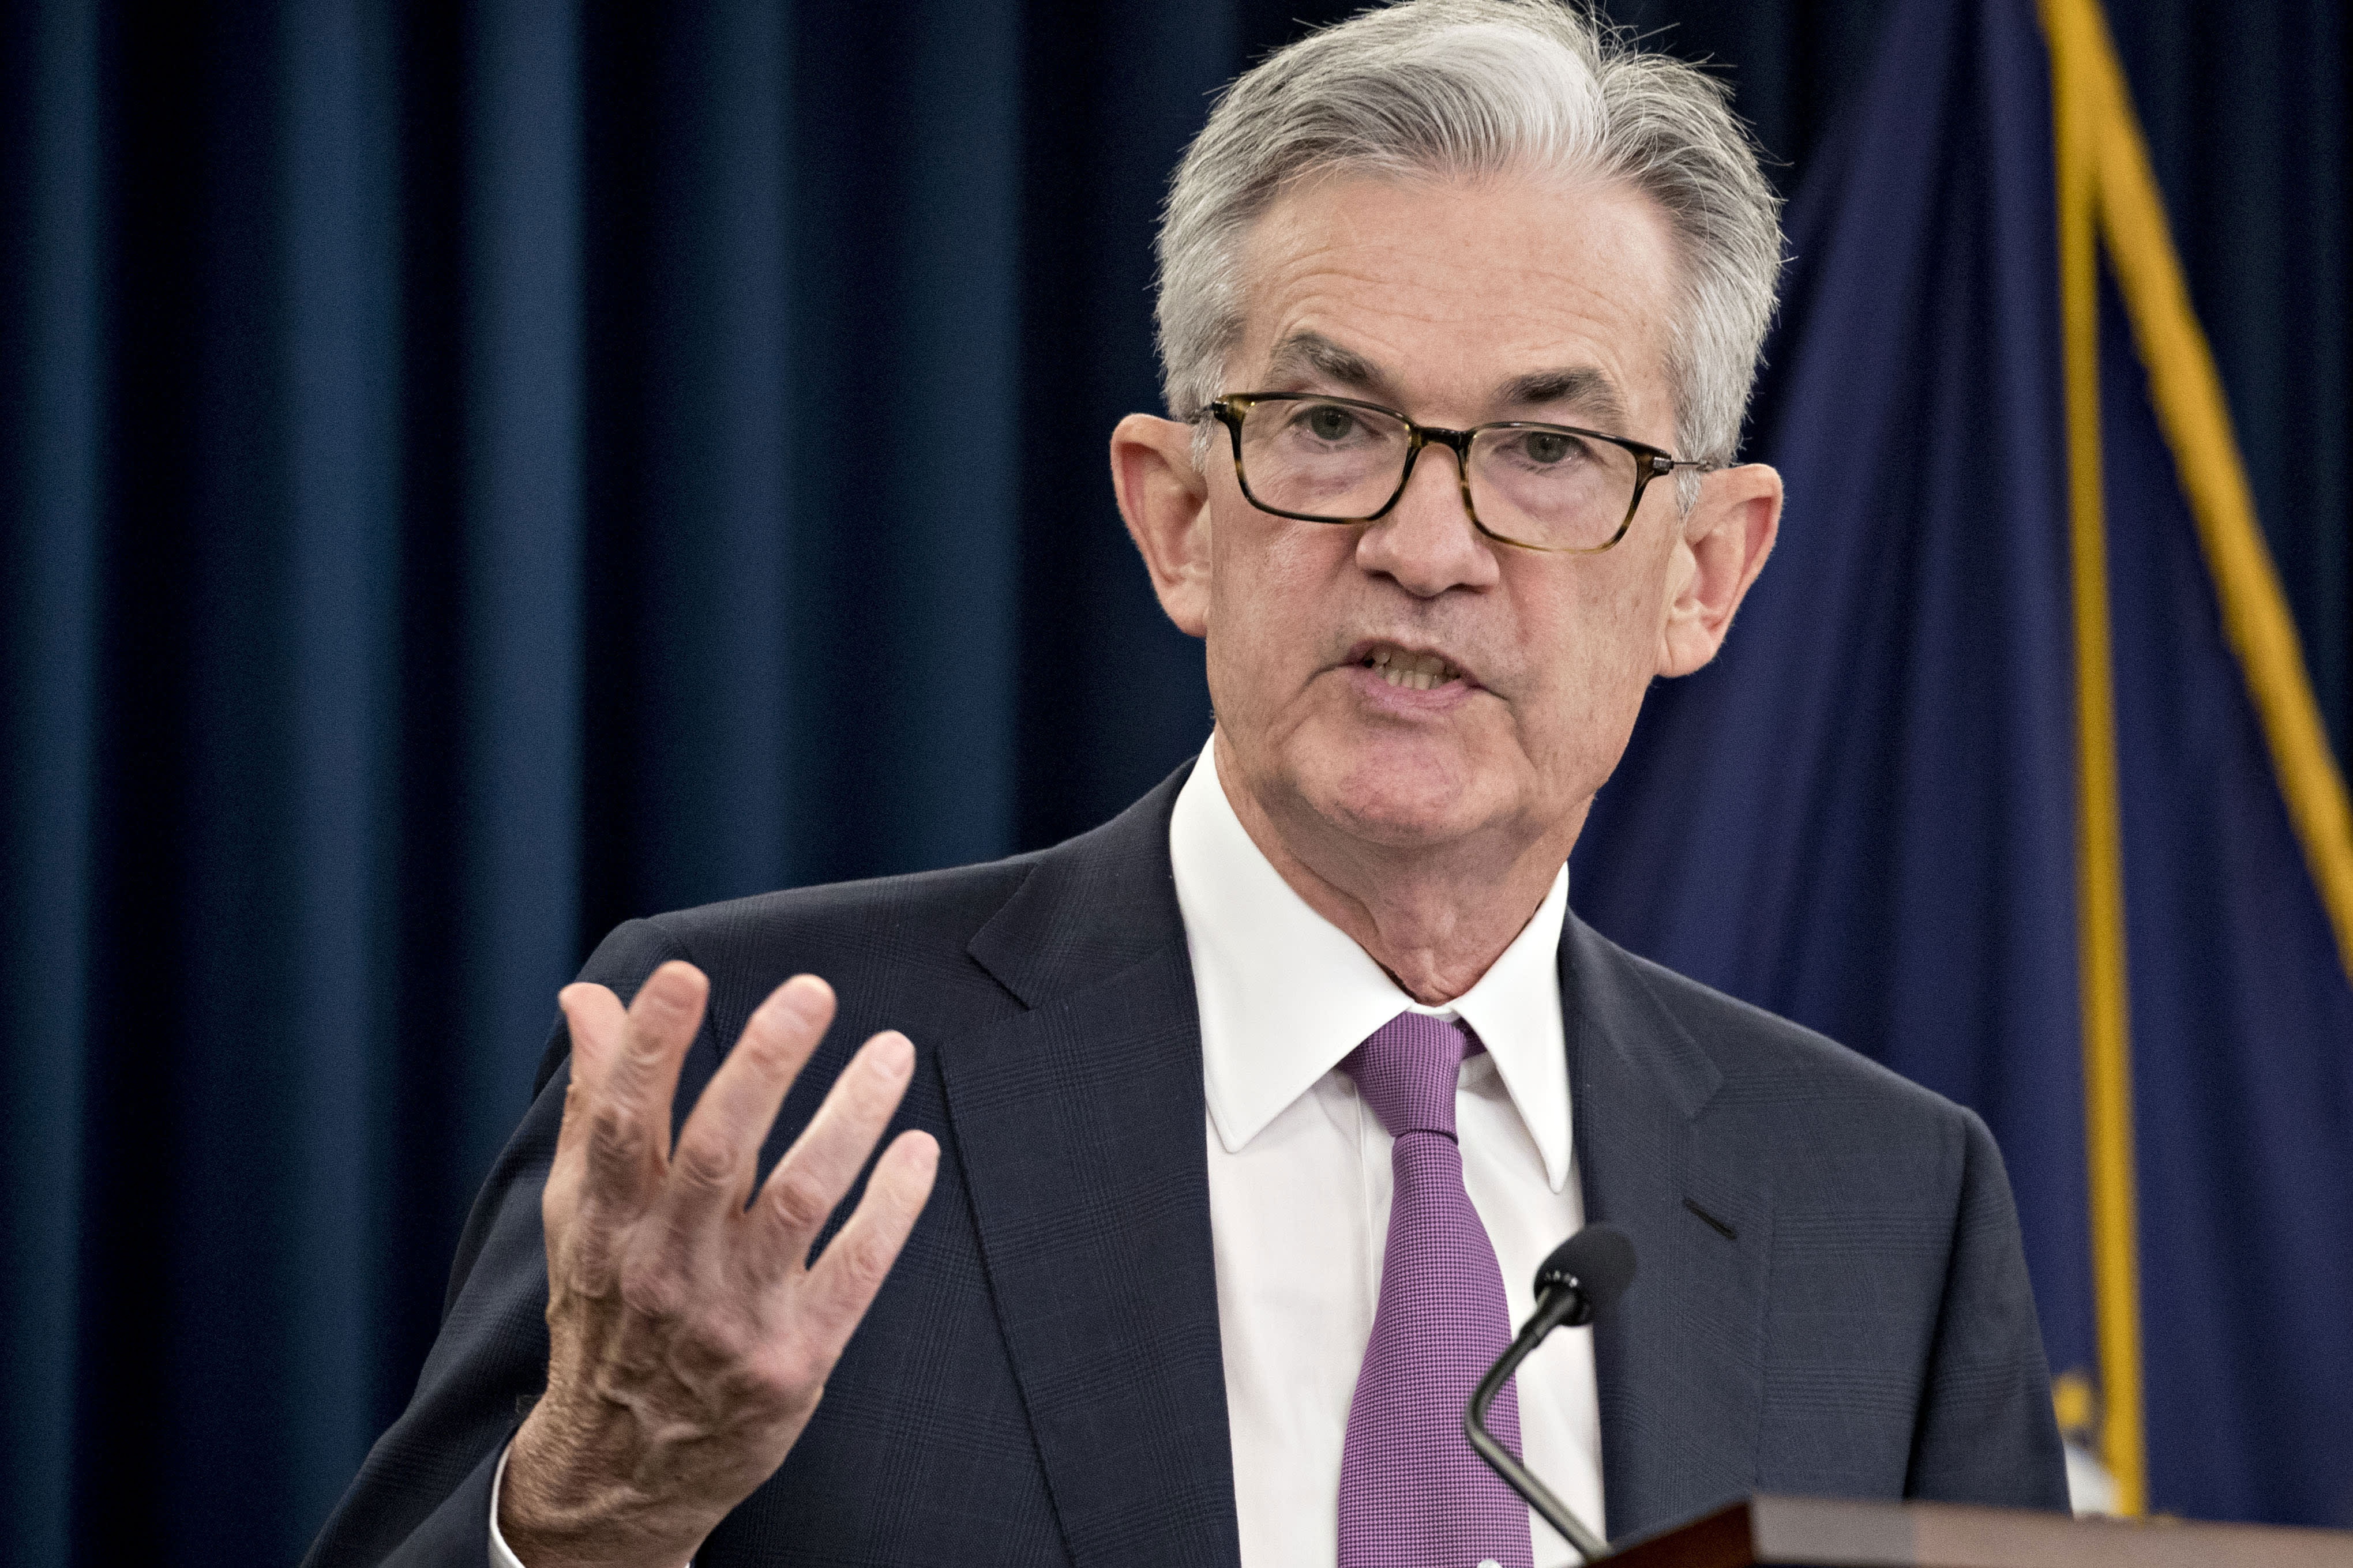 Fed Chair Powell says he would want to see persistent rise in inflation before hiking rates again